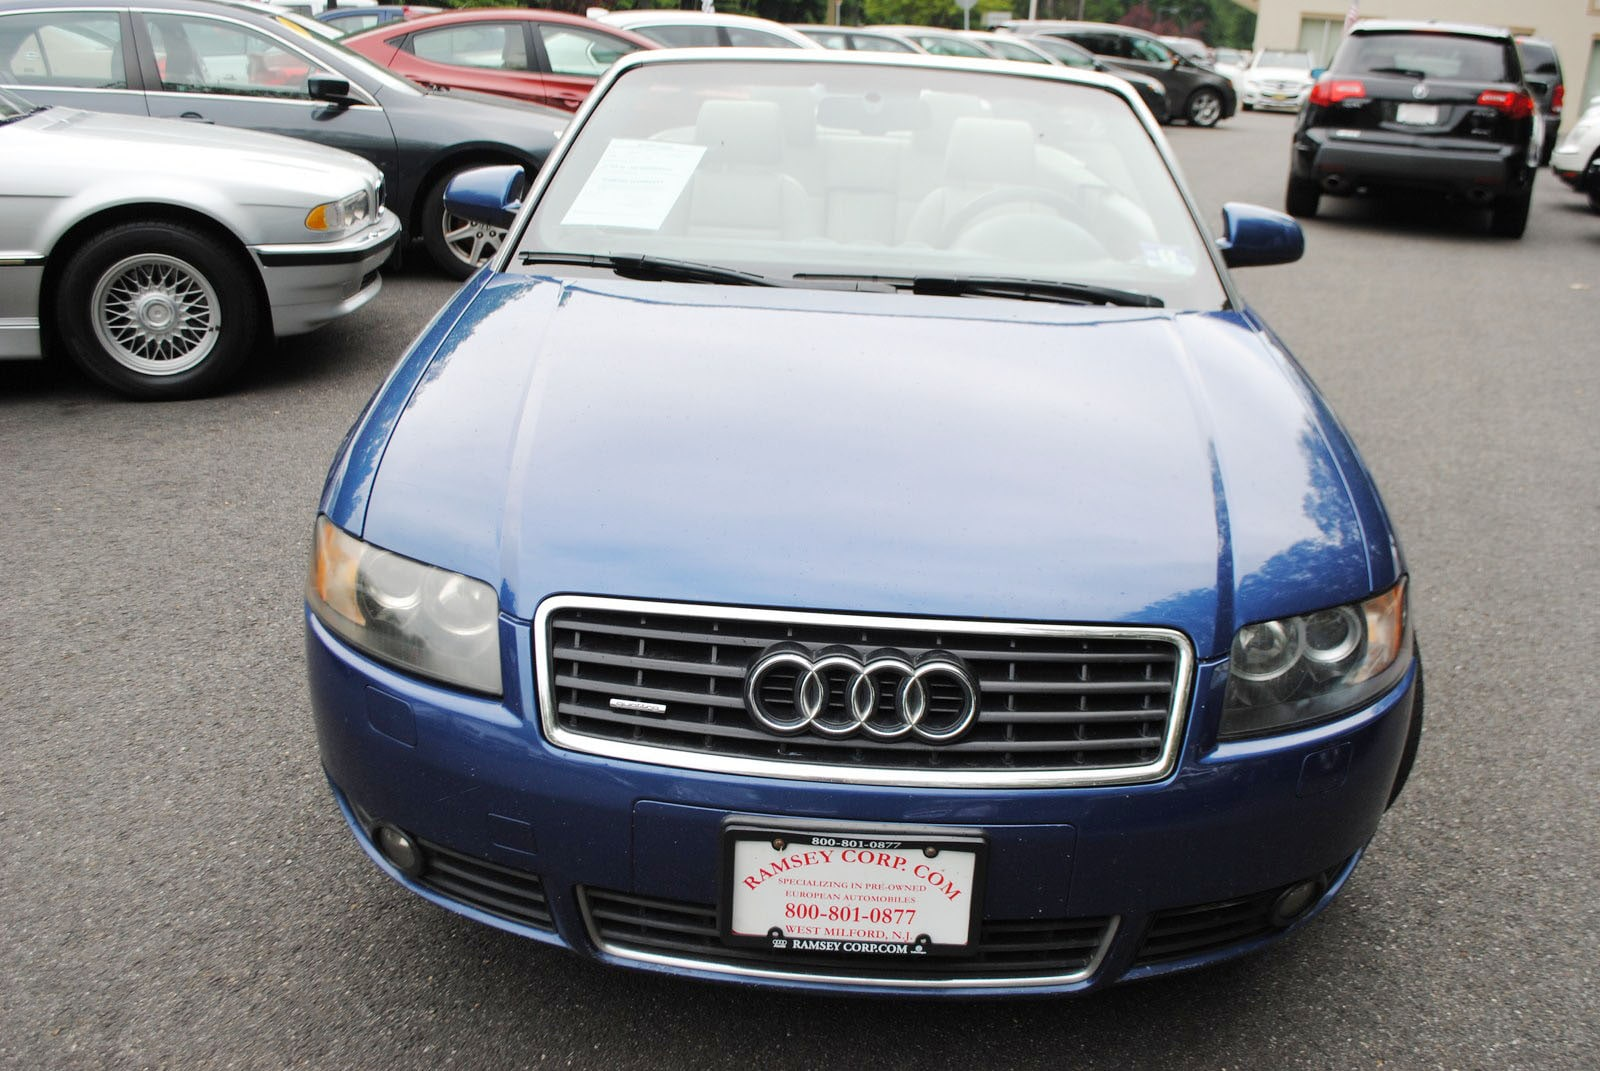 used 2004 audi a4 for sale west milford nj rh ramseycorp com Audi A4 Turbo Audi A4 Turbo